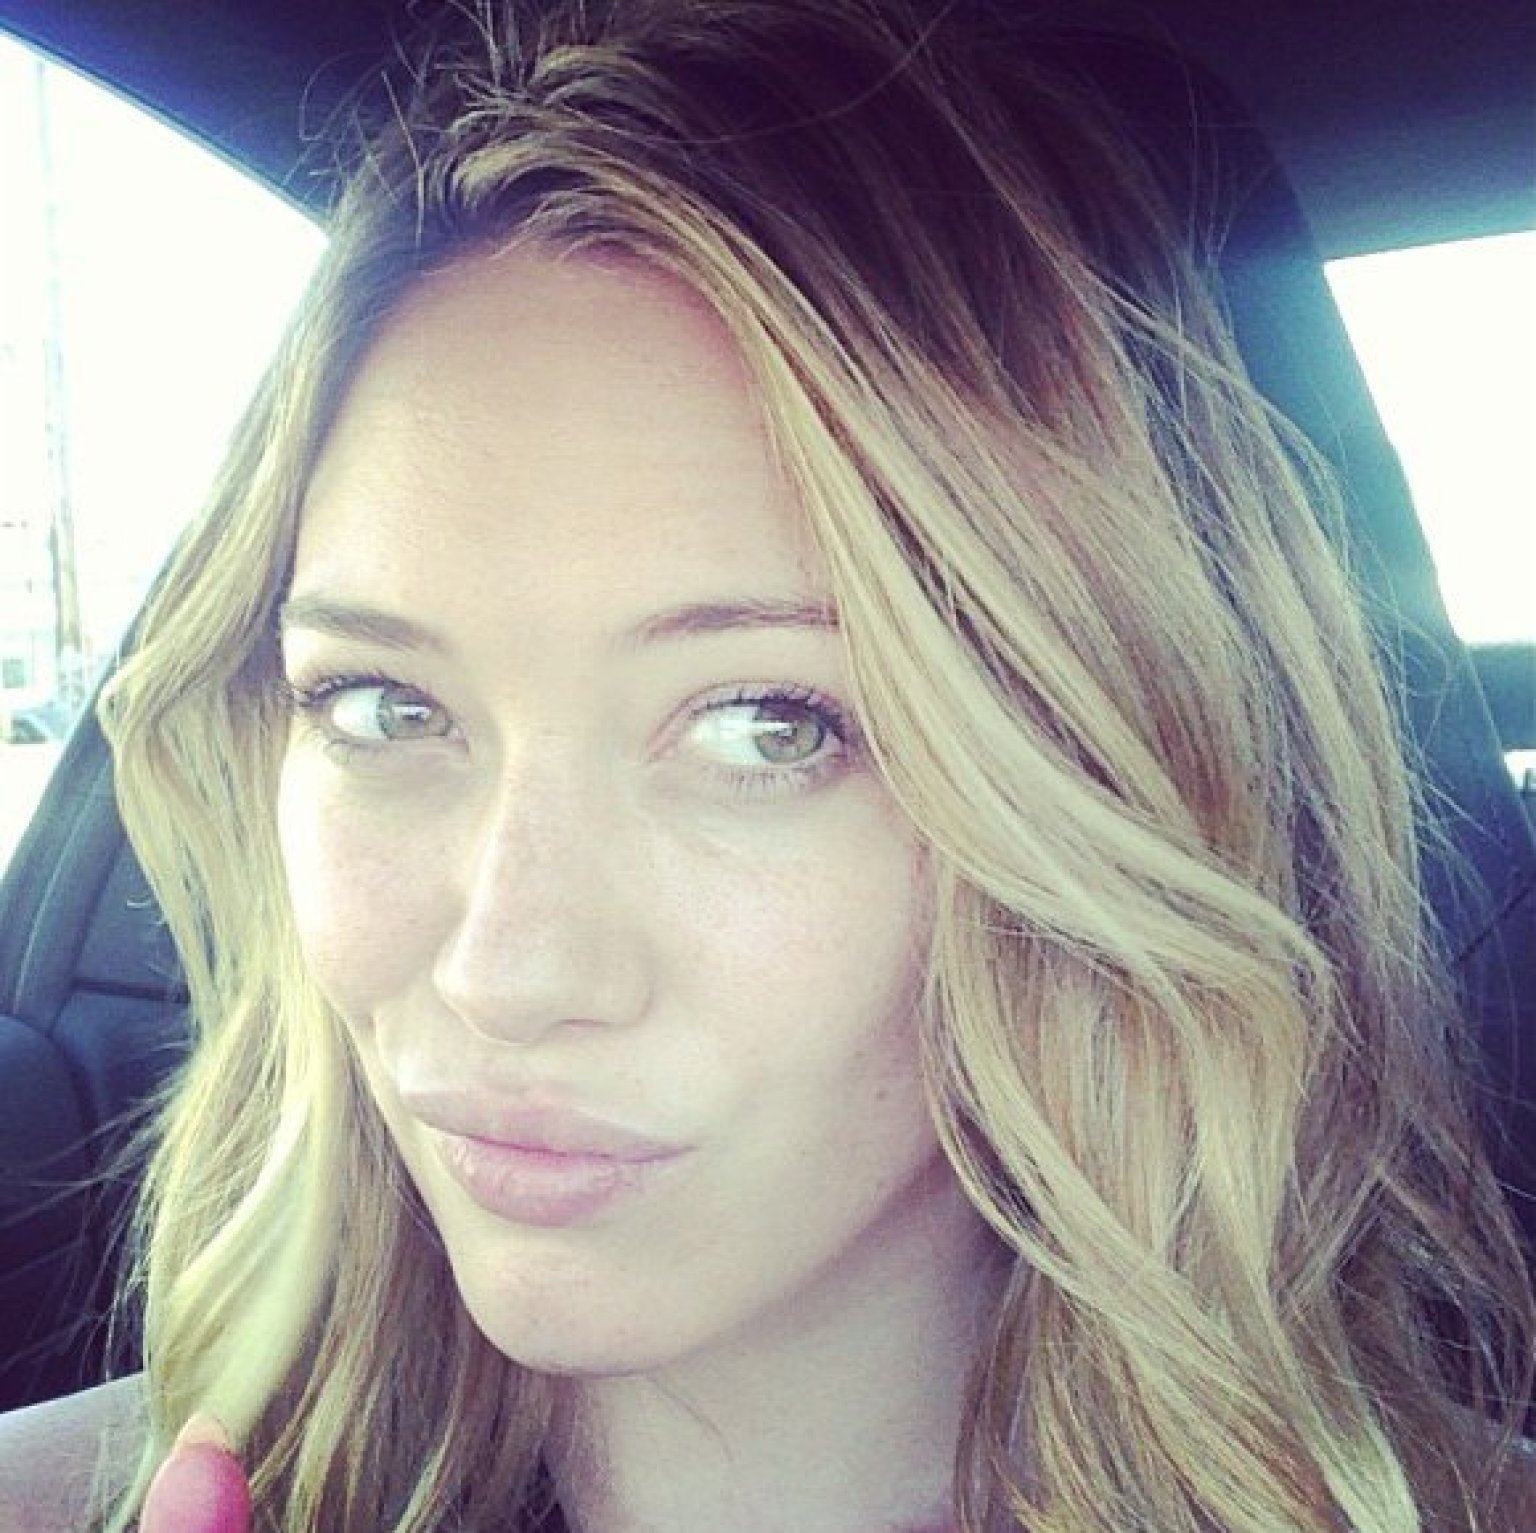 Hilary Duff Doesn't Need Makeup To Look Stunning | HuffPost Hilary Duff Facebook